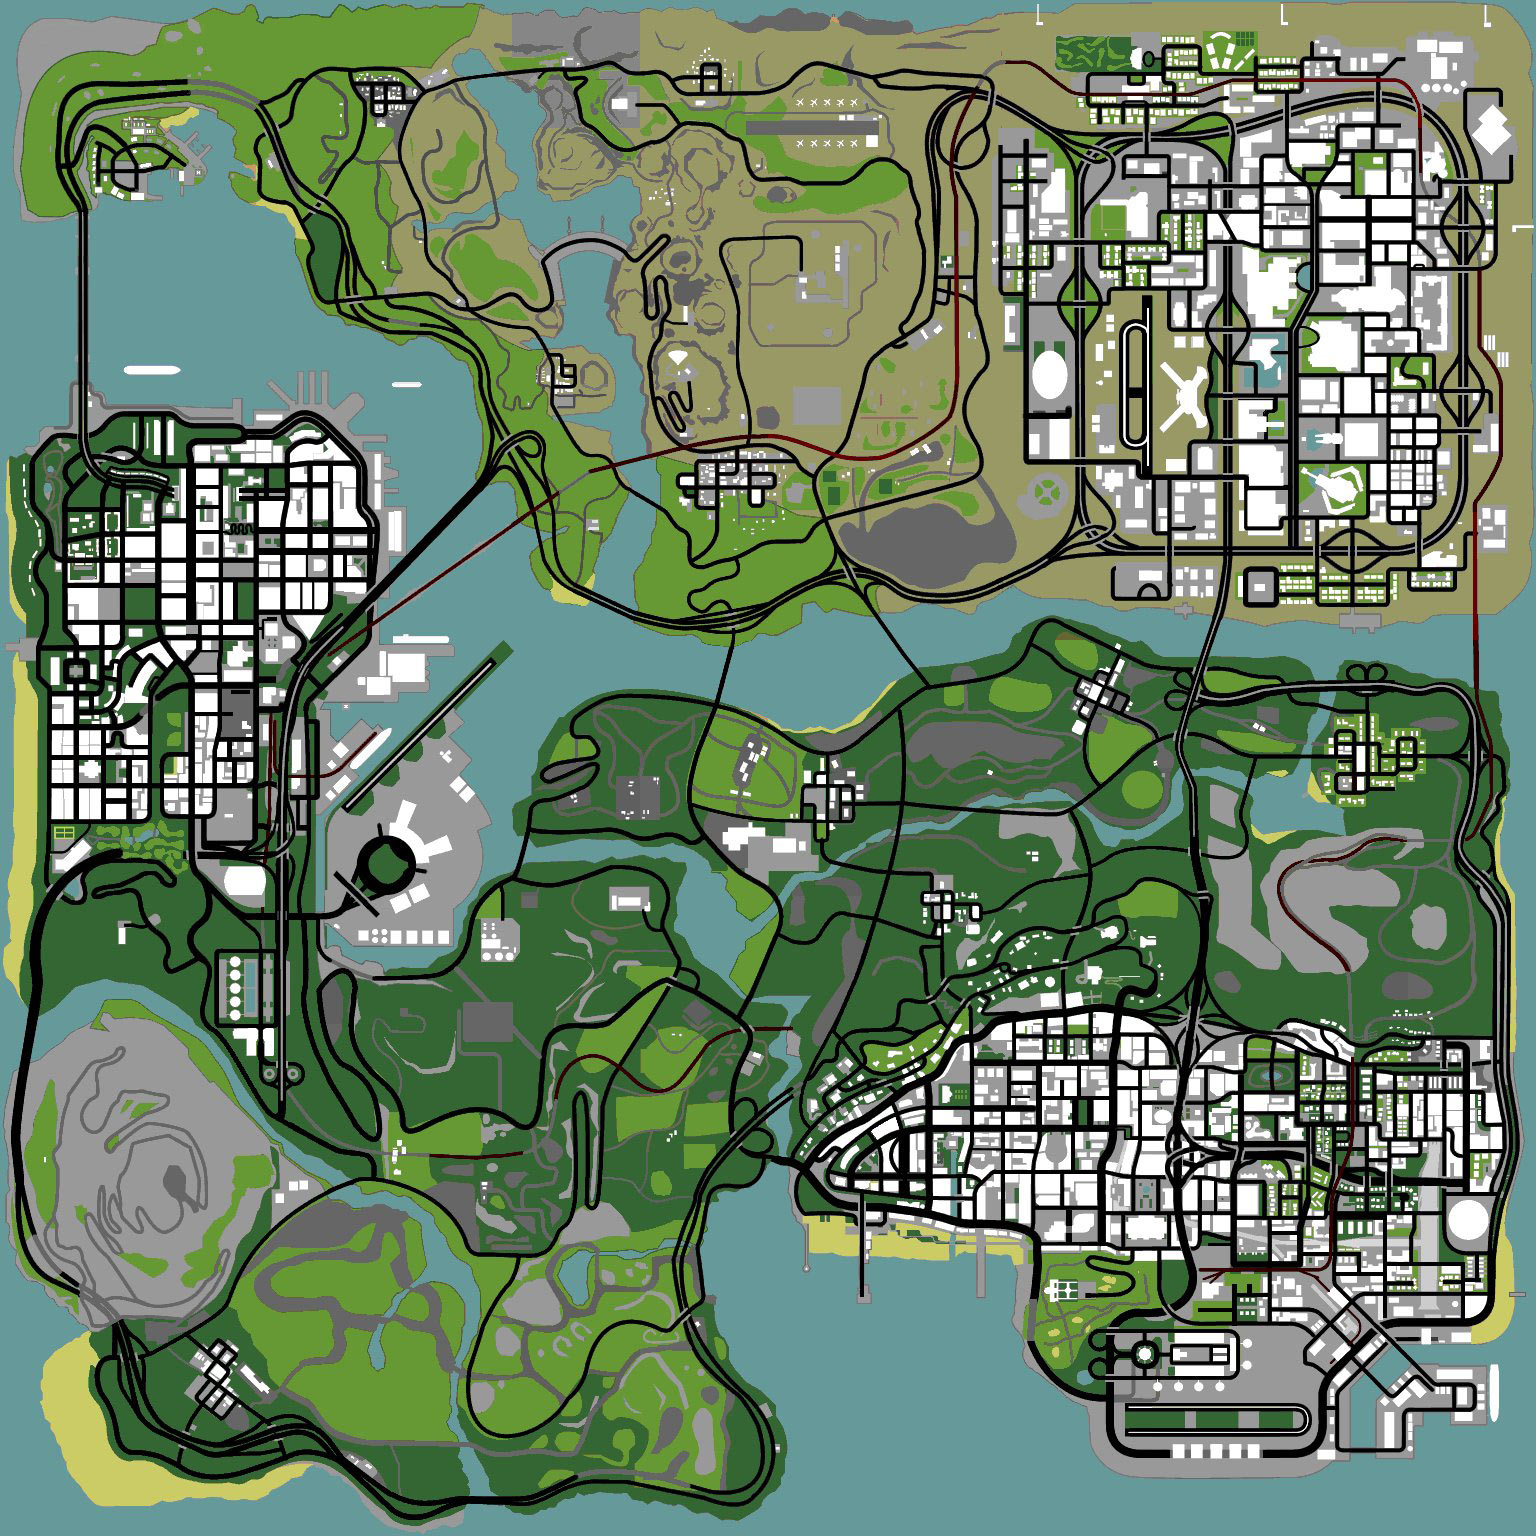 Gta san andreas multiplayer fun server download free 03c